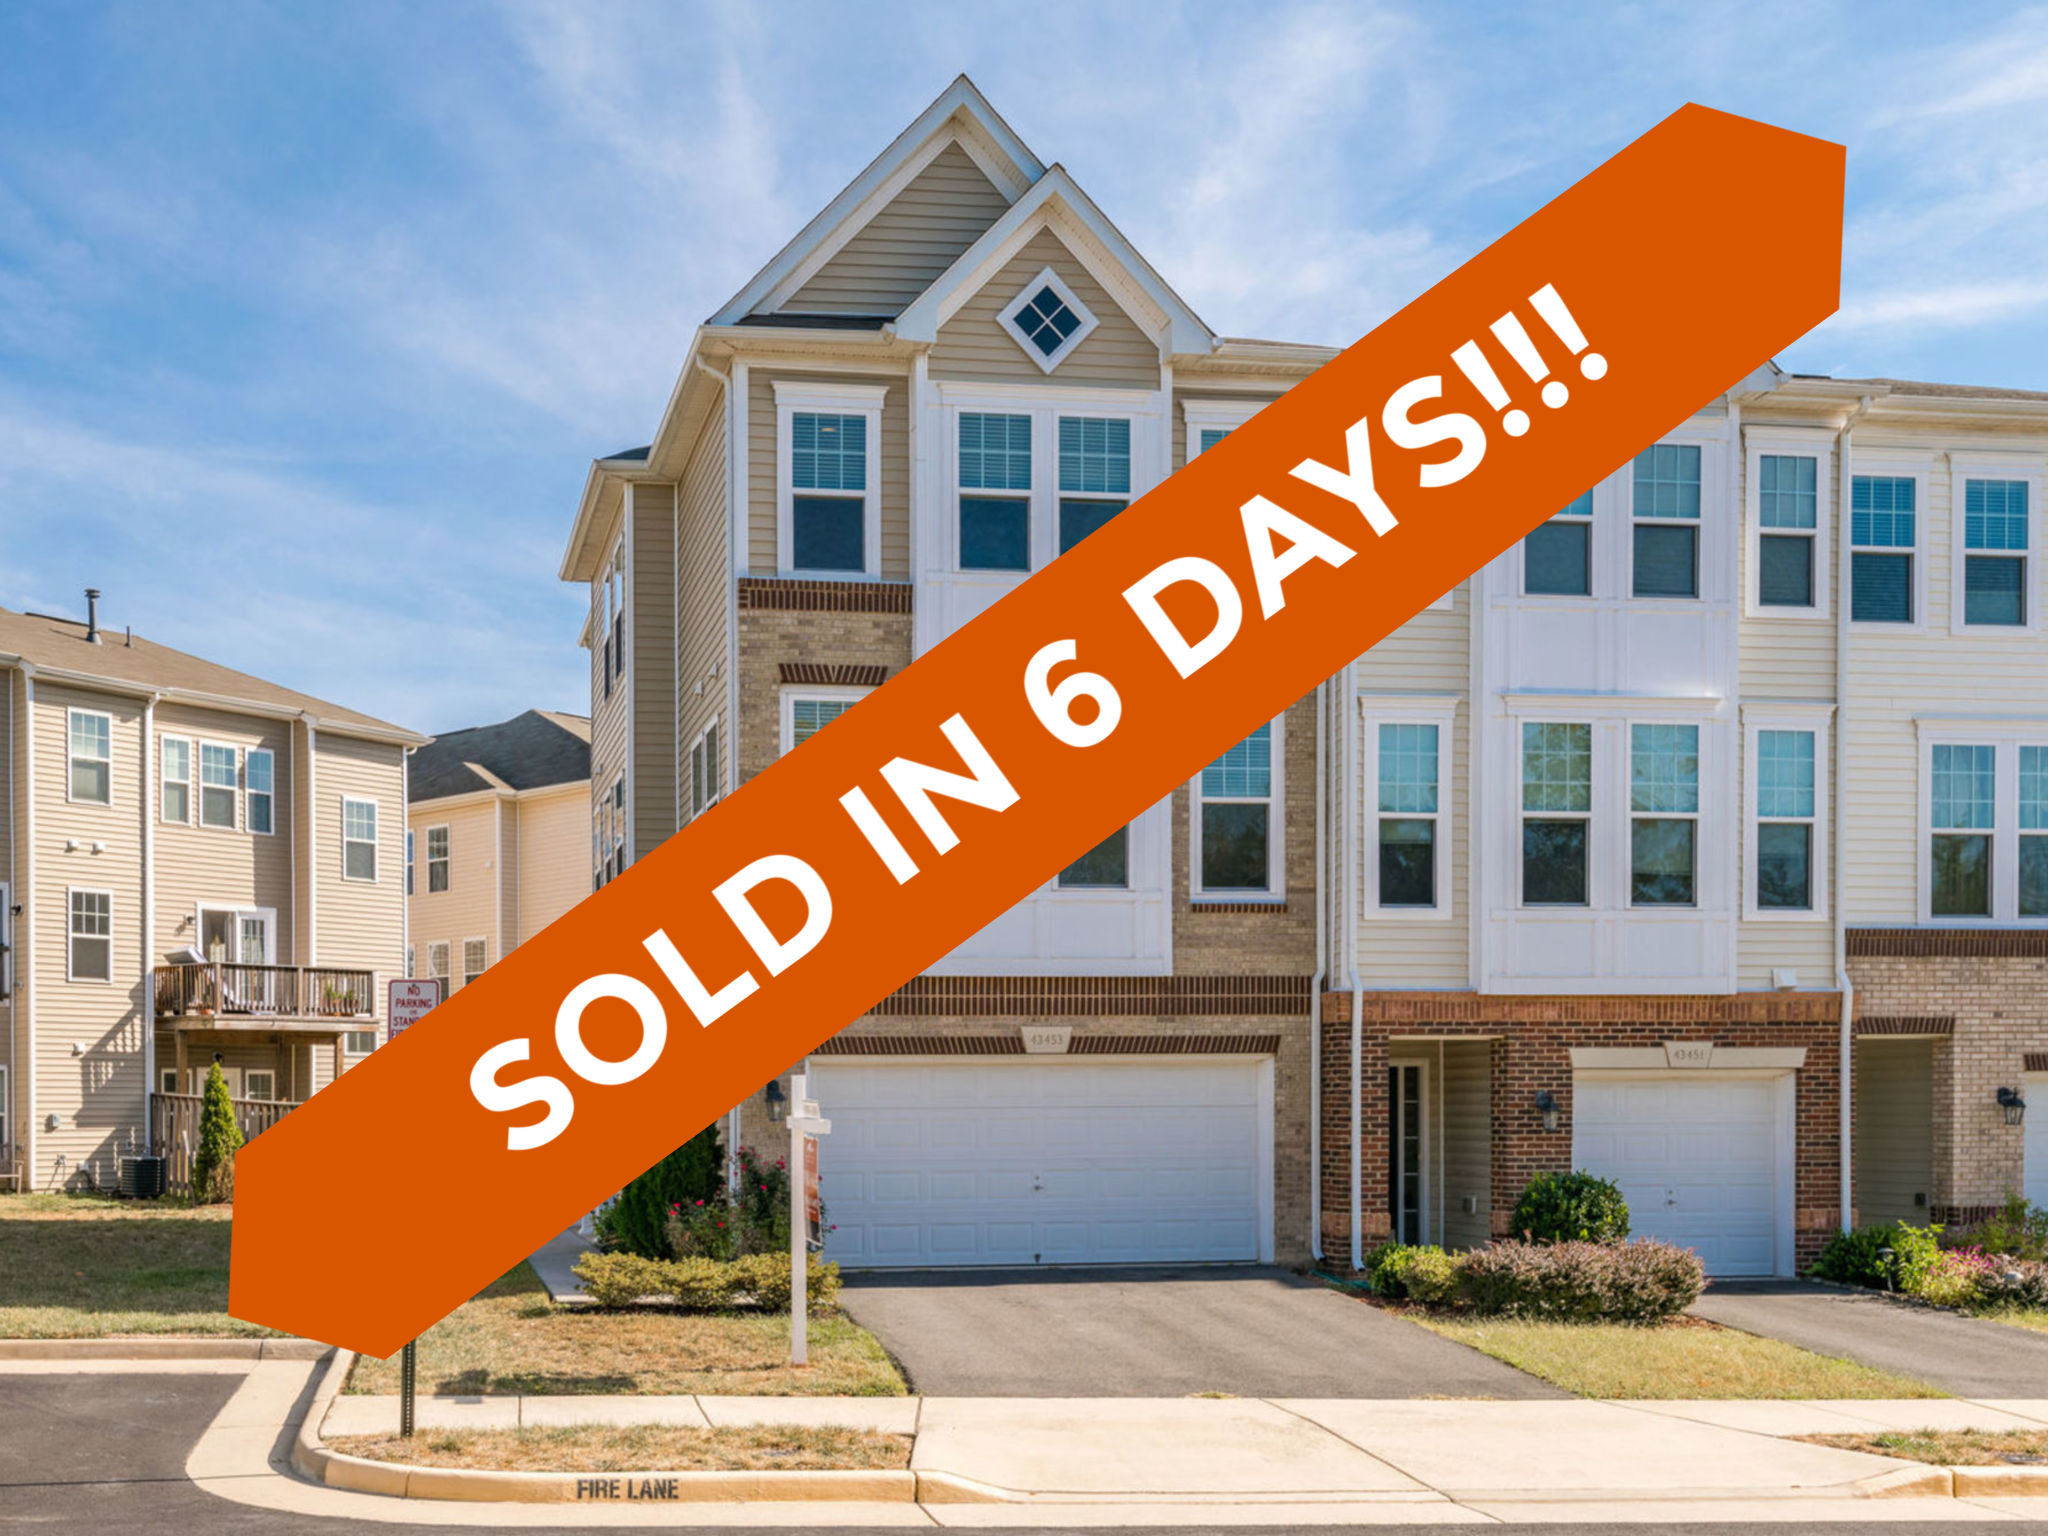 43453 Rickenbacker Sq, Ashburn - SOLD